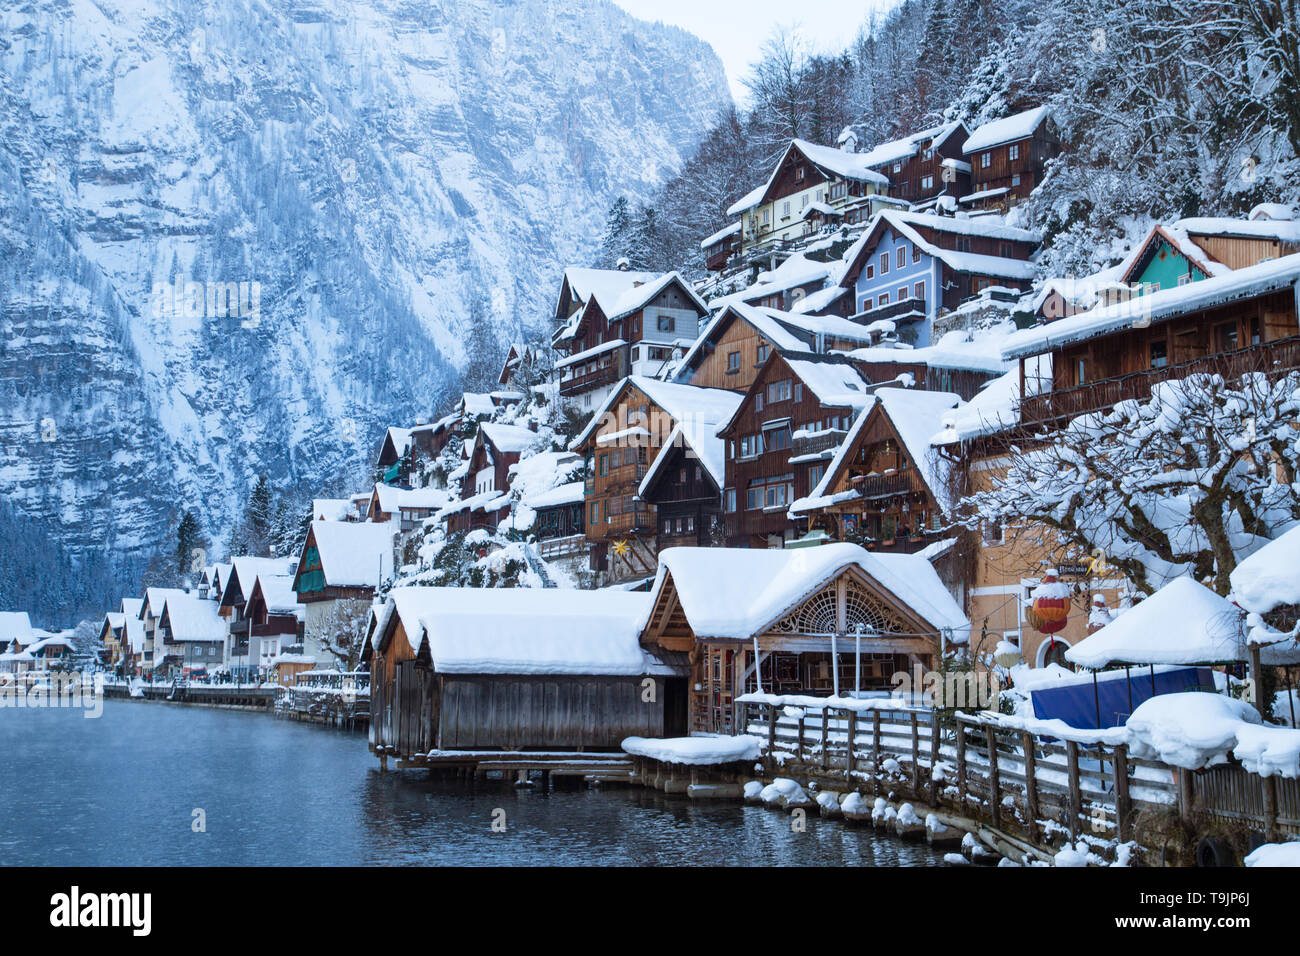 Classic postcard view of traditional wooden houses in famous Hallstatt lakeside town in the Alps in mystic twilight during blue hour at dawn on a beau - Stock Image